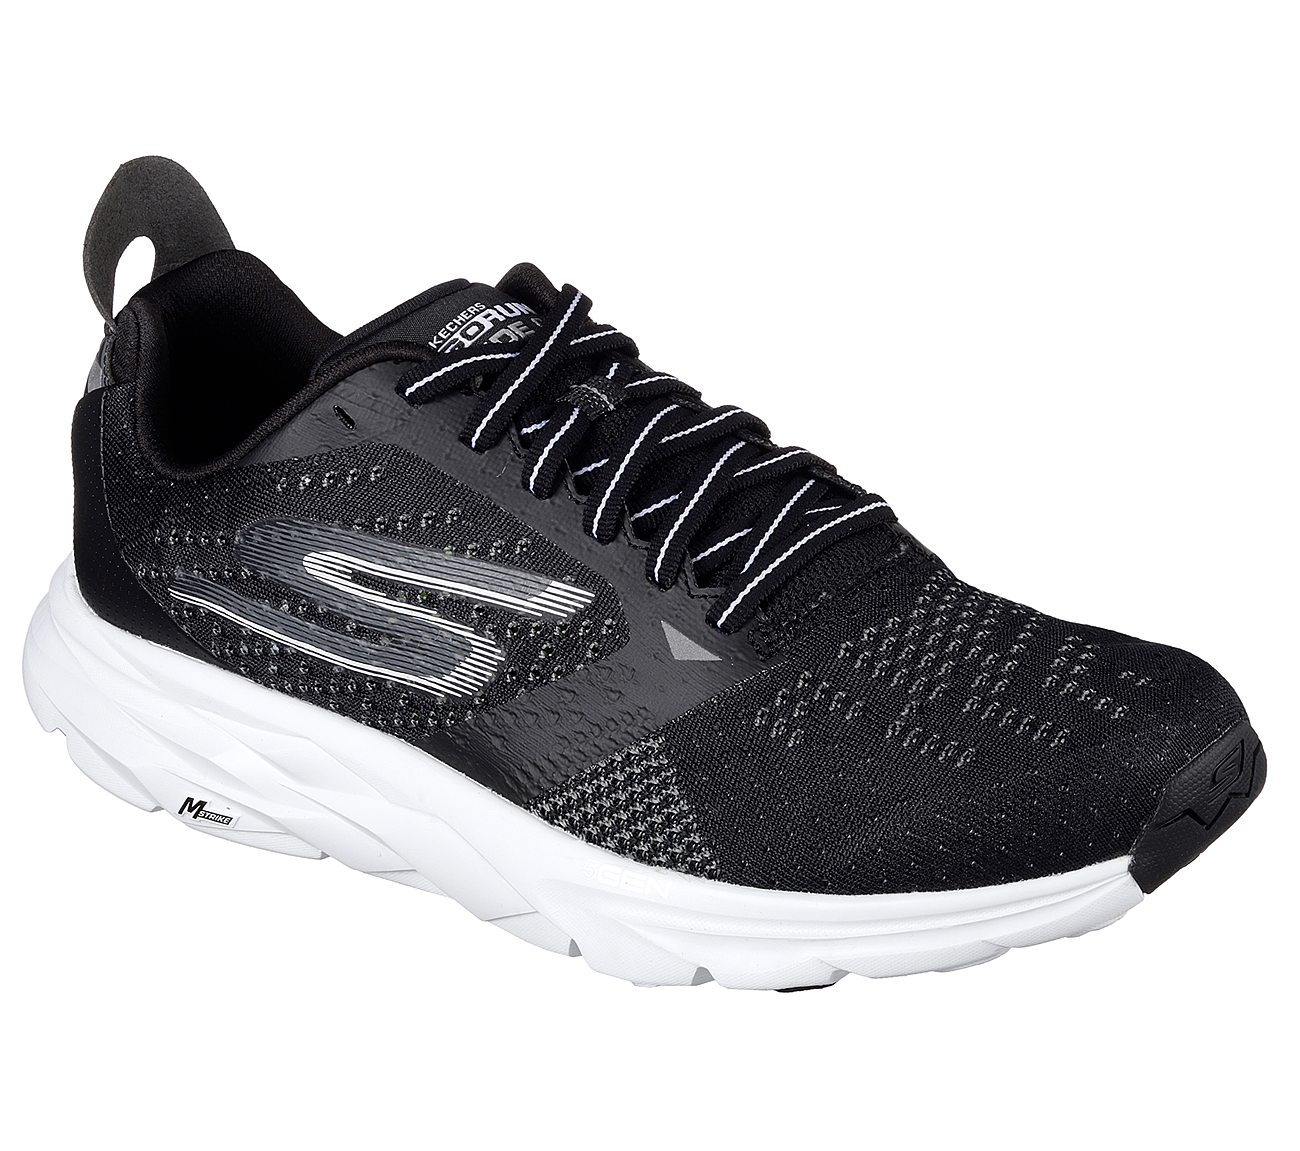 Buy SKECHERS Skechers GOrun Ride 6 Skechers Performance Shoes ULpml